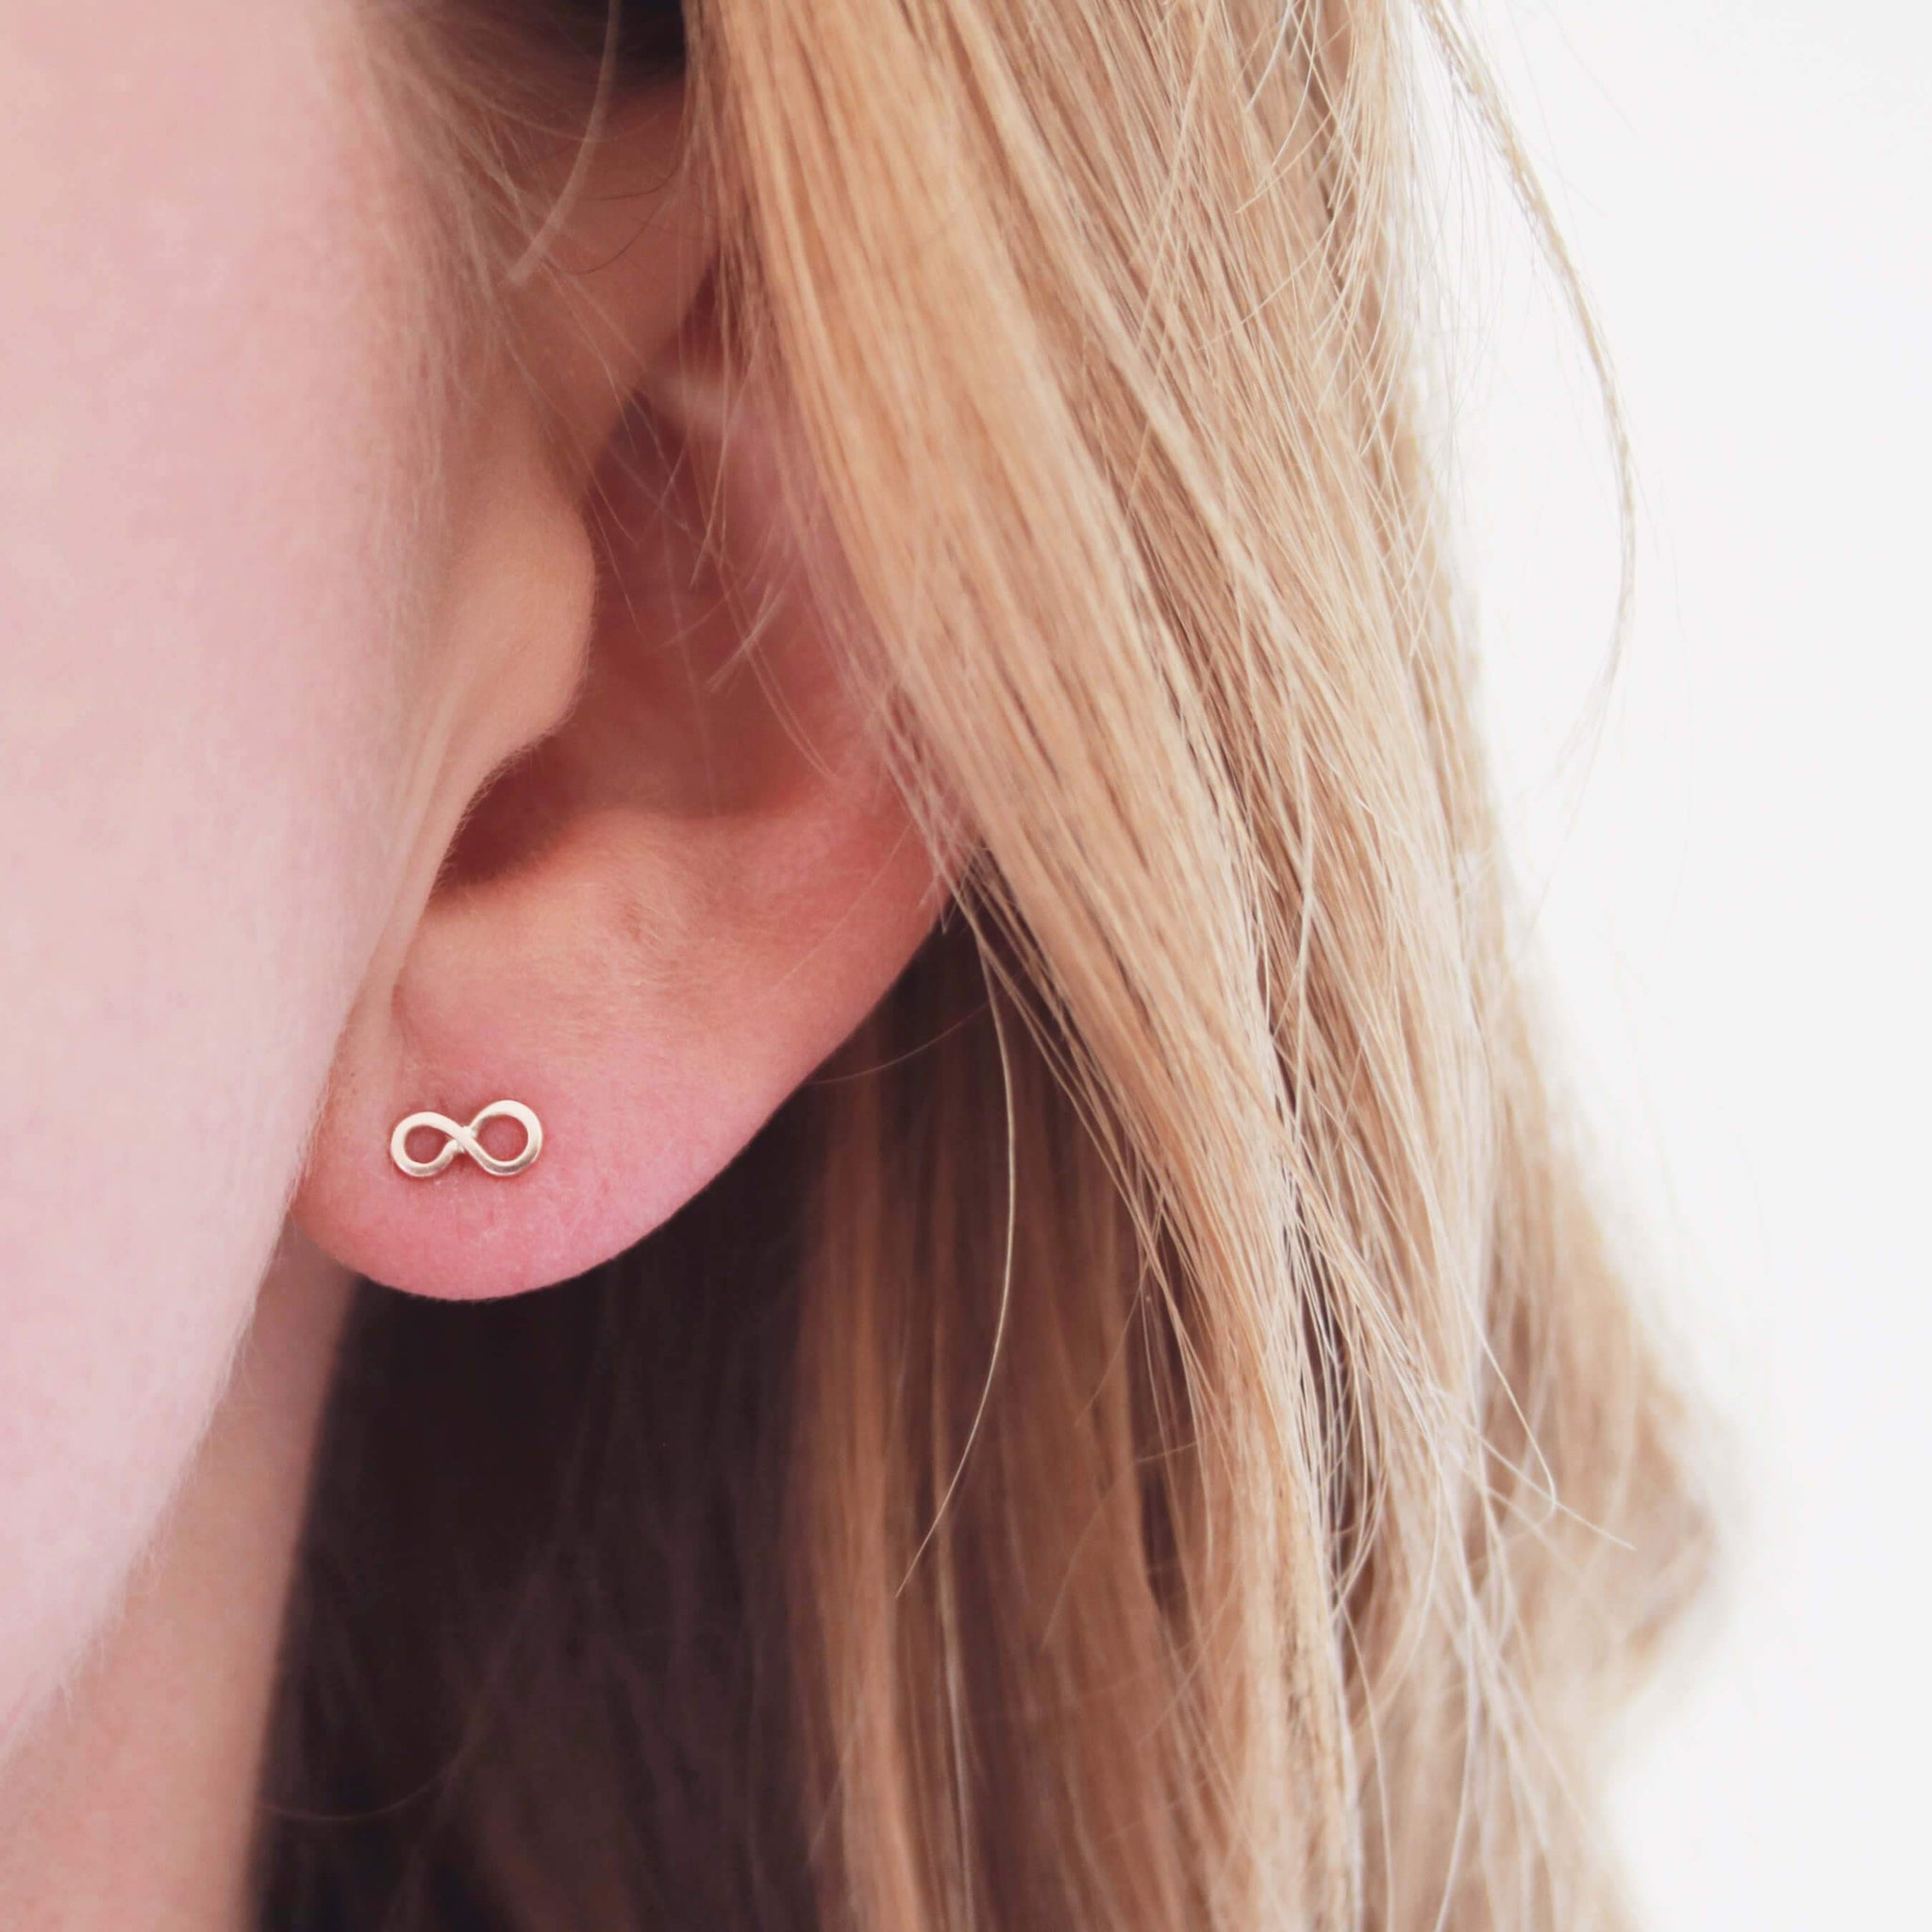 tiny gold earrings